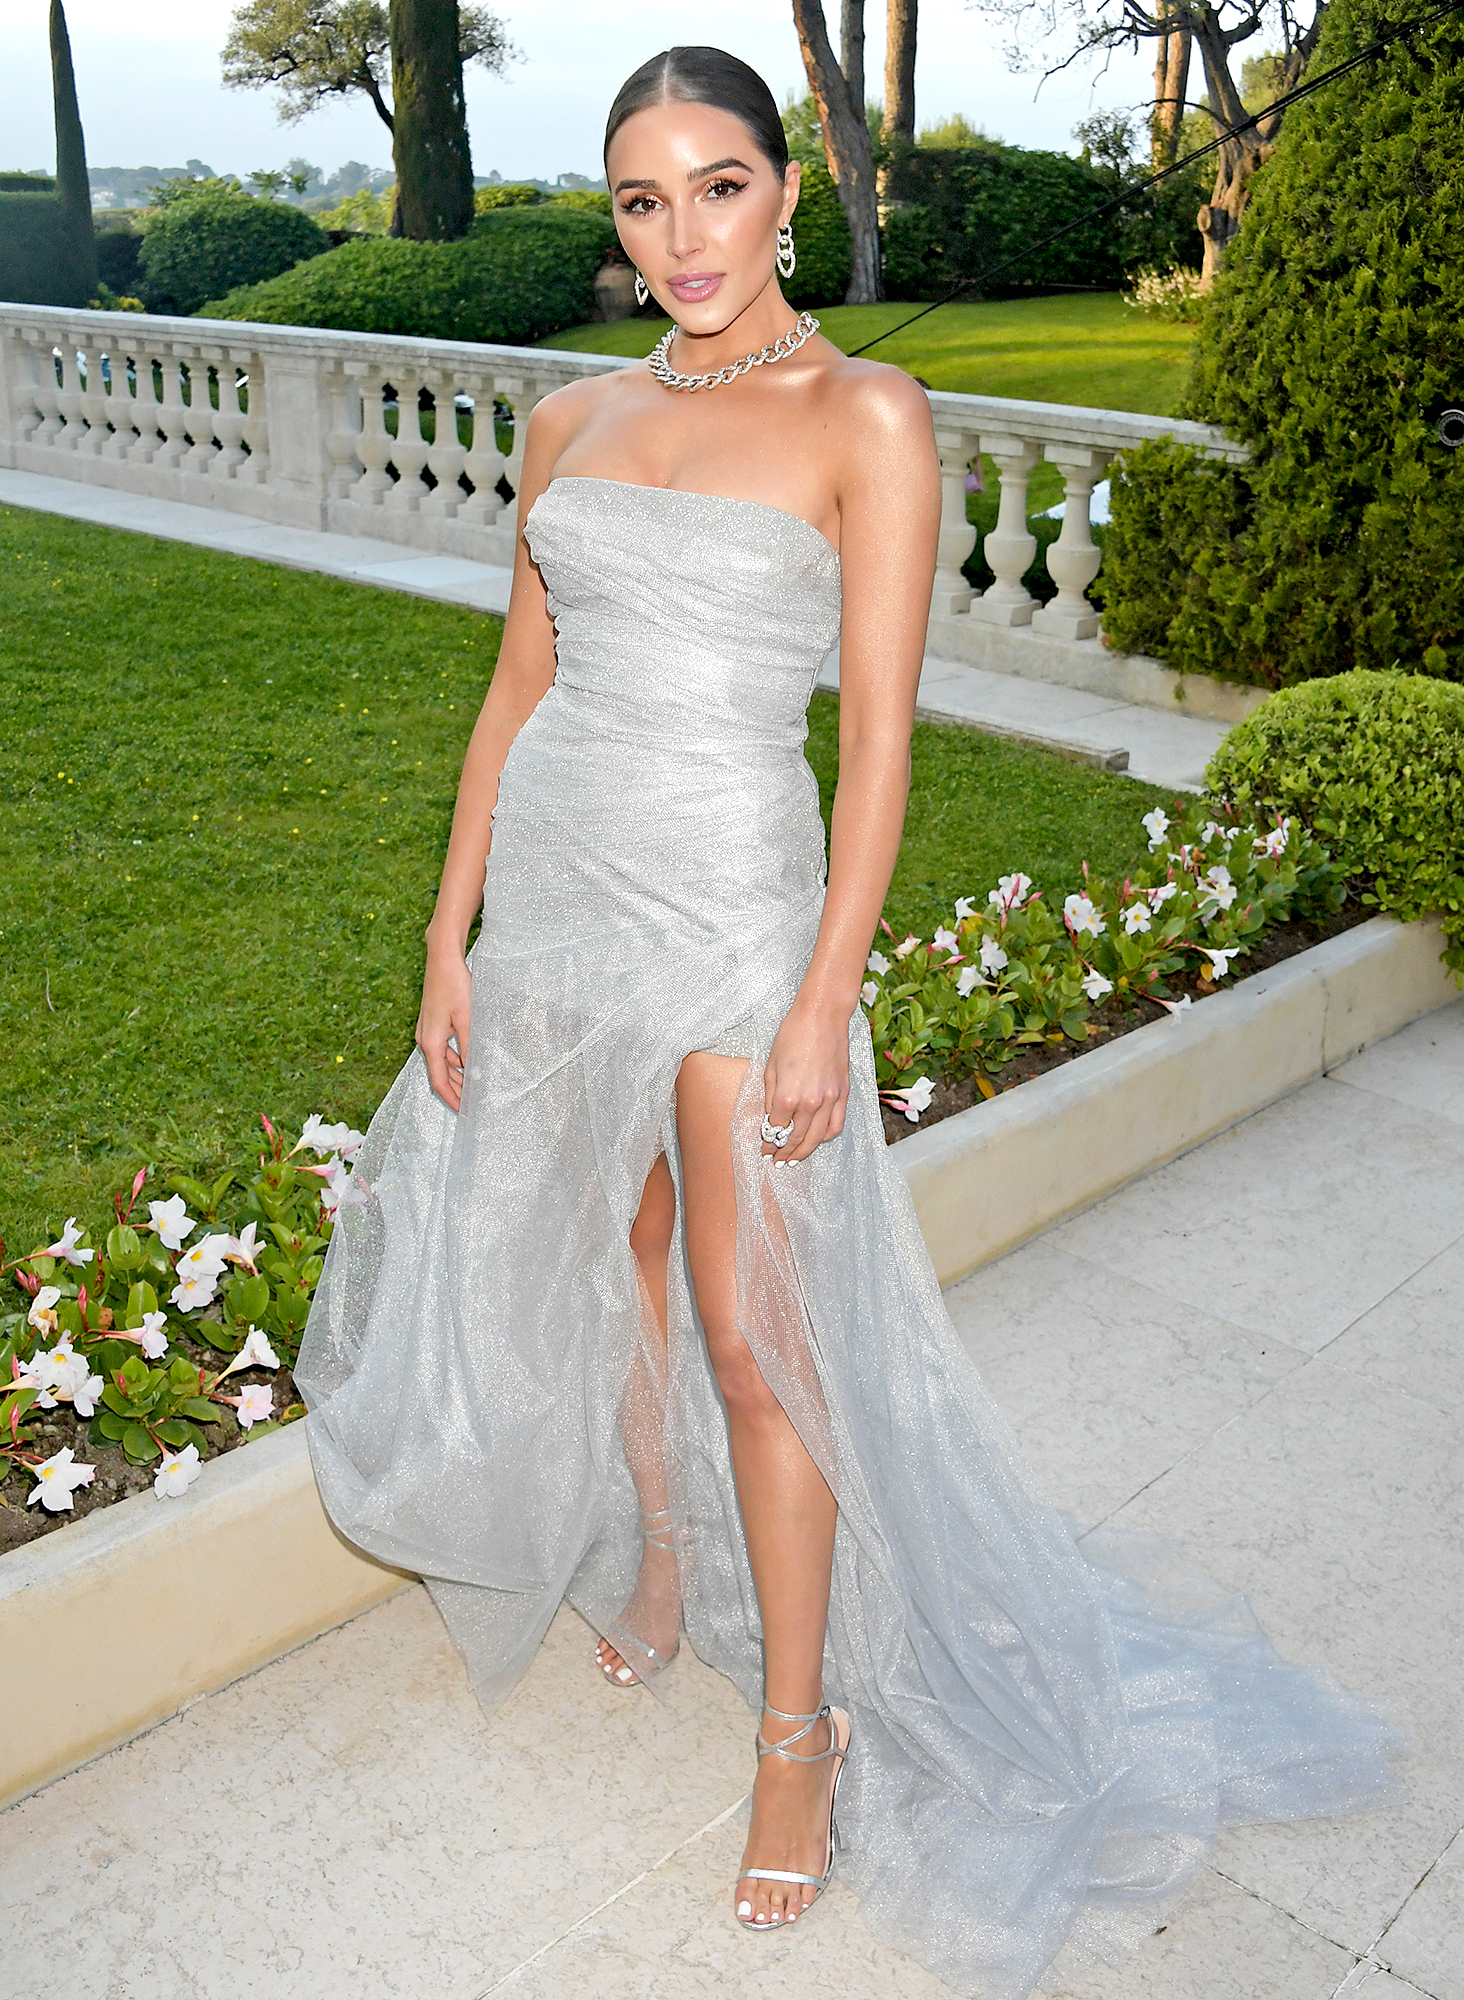 Olivia-Culpo - The former Miss Universe was shimmering in a strapless Ermanno Scervino number at the amfAR Cannes Gala on Thursday, May 23.